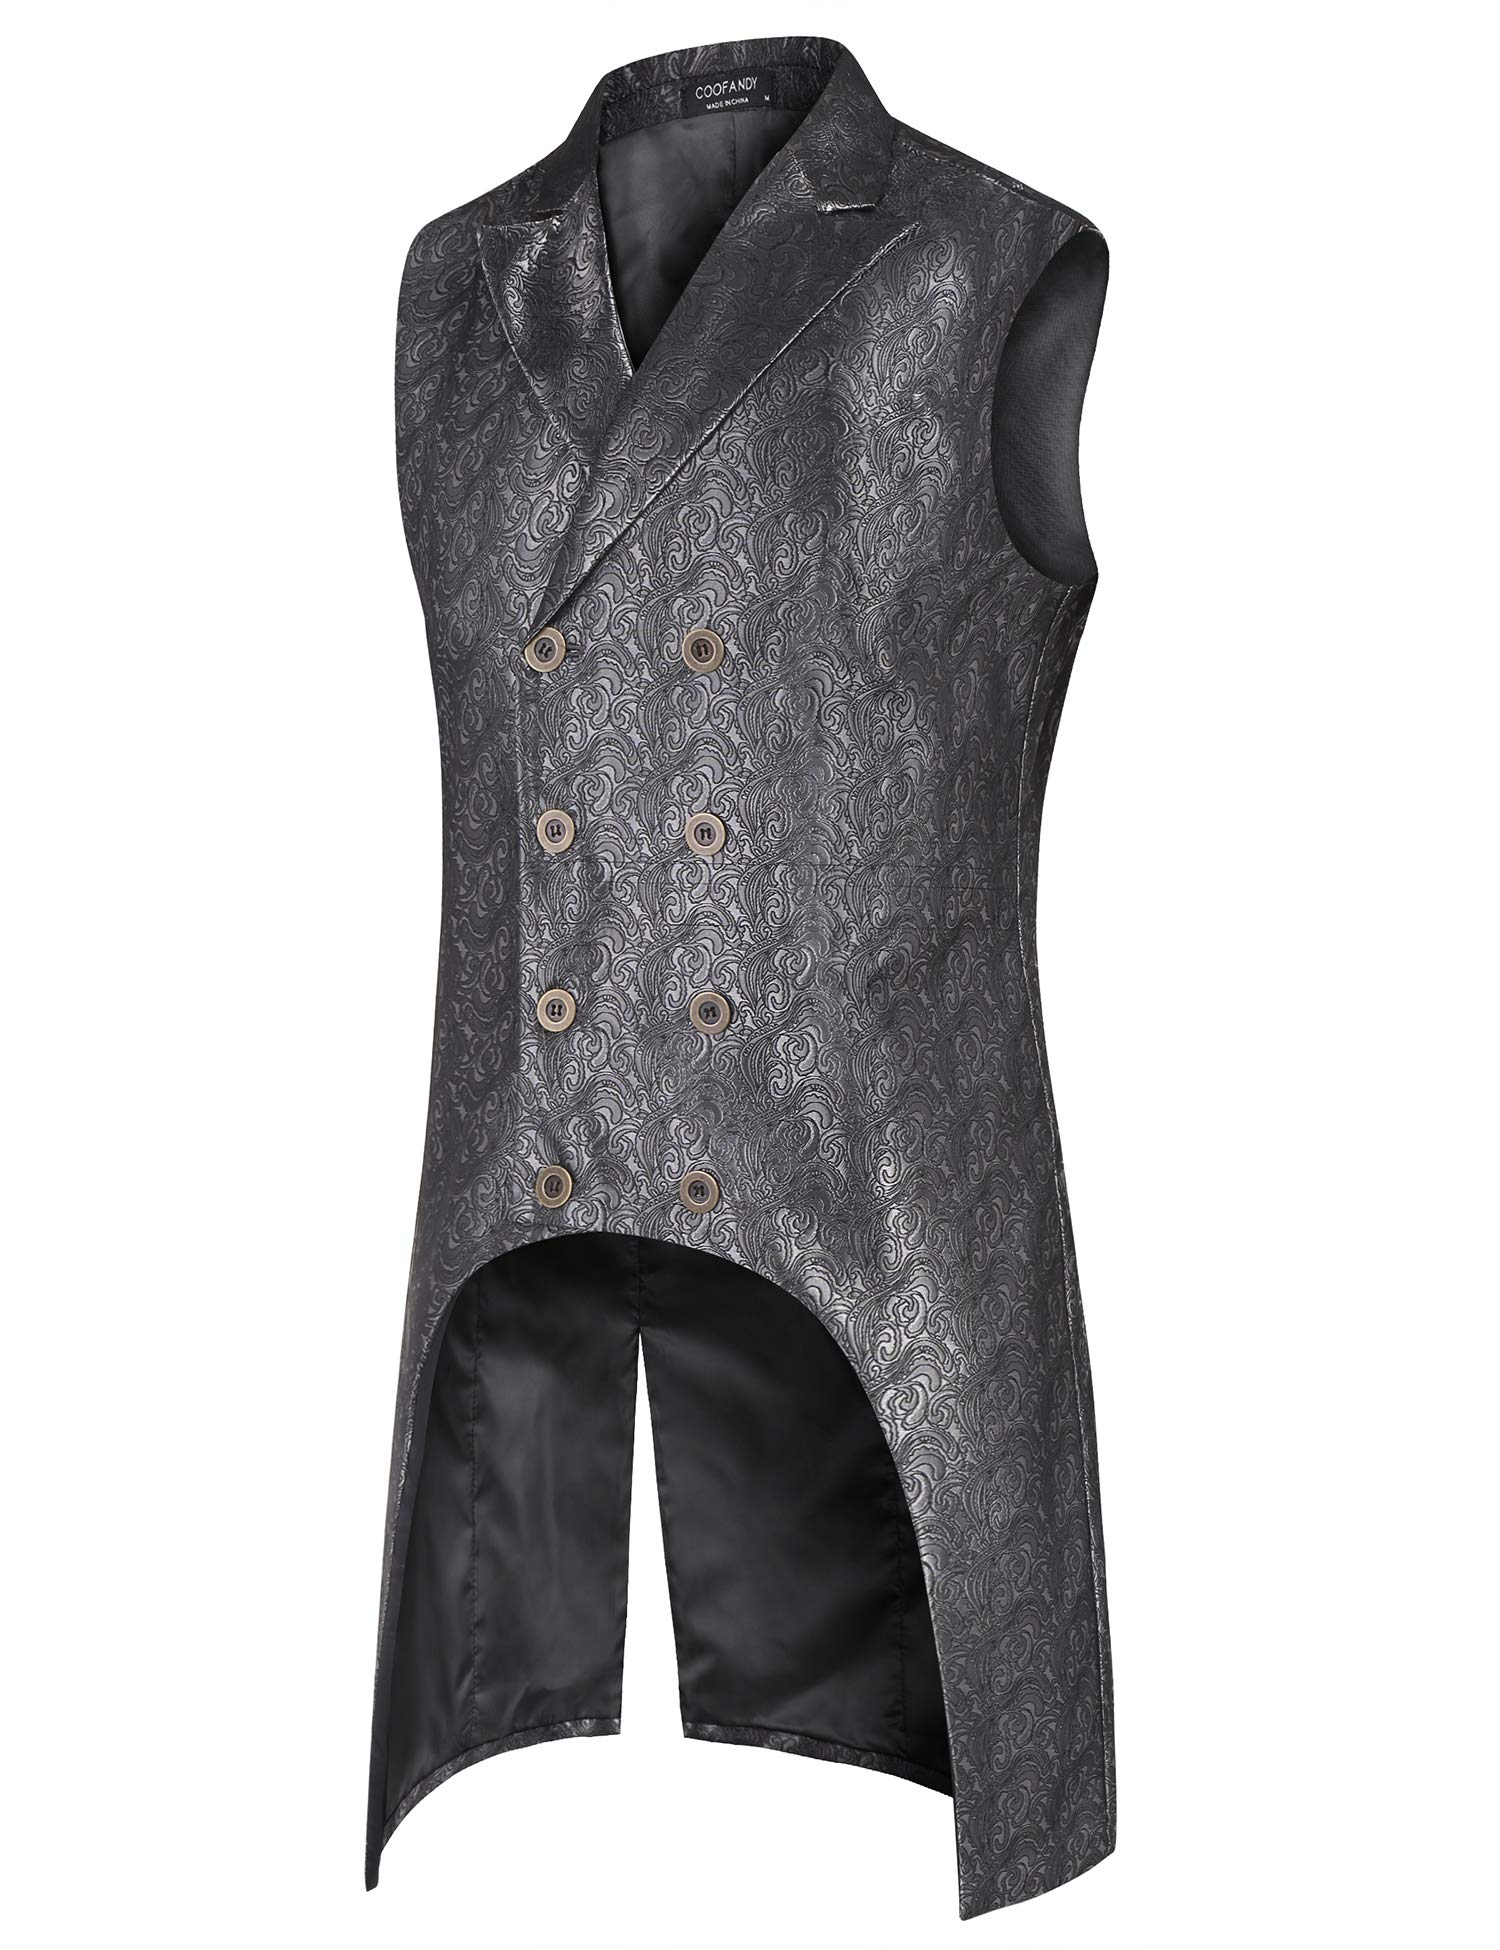 COOFANDY Men's Gothic Steampunk Vest Double Breasted Jacquard Brocade Waistcoat 4